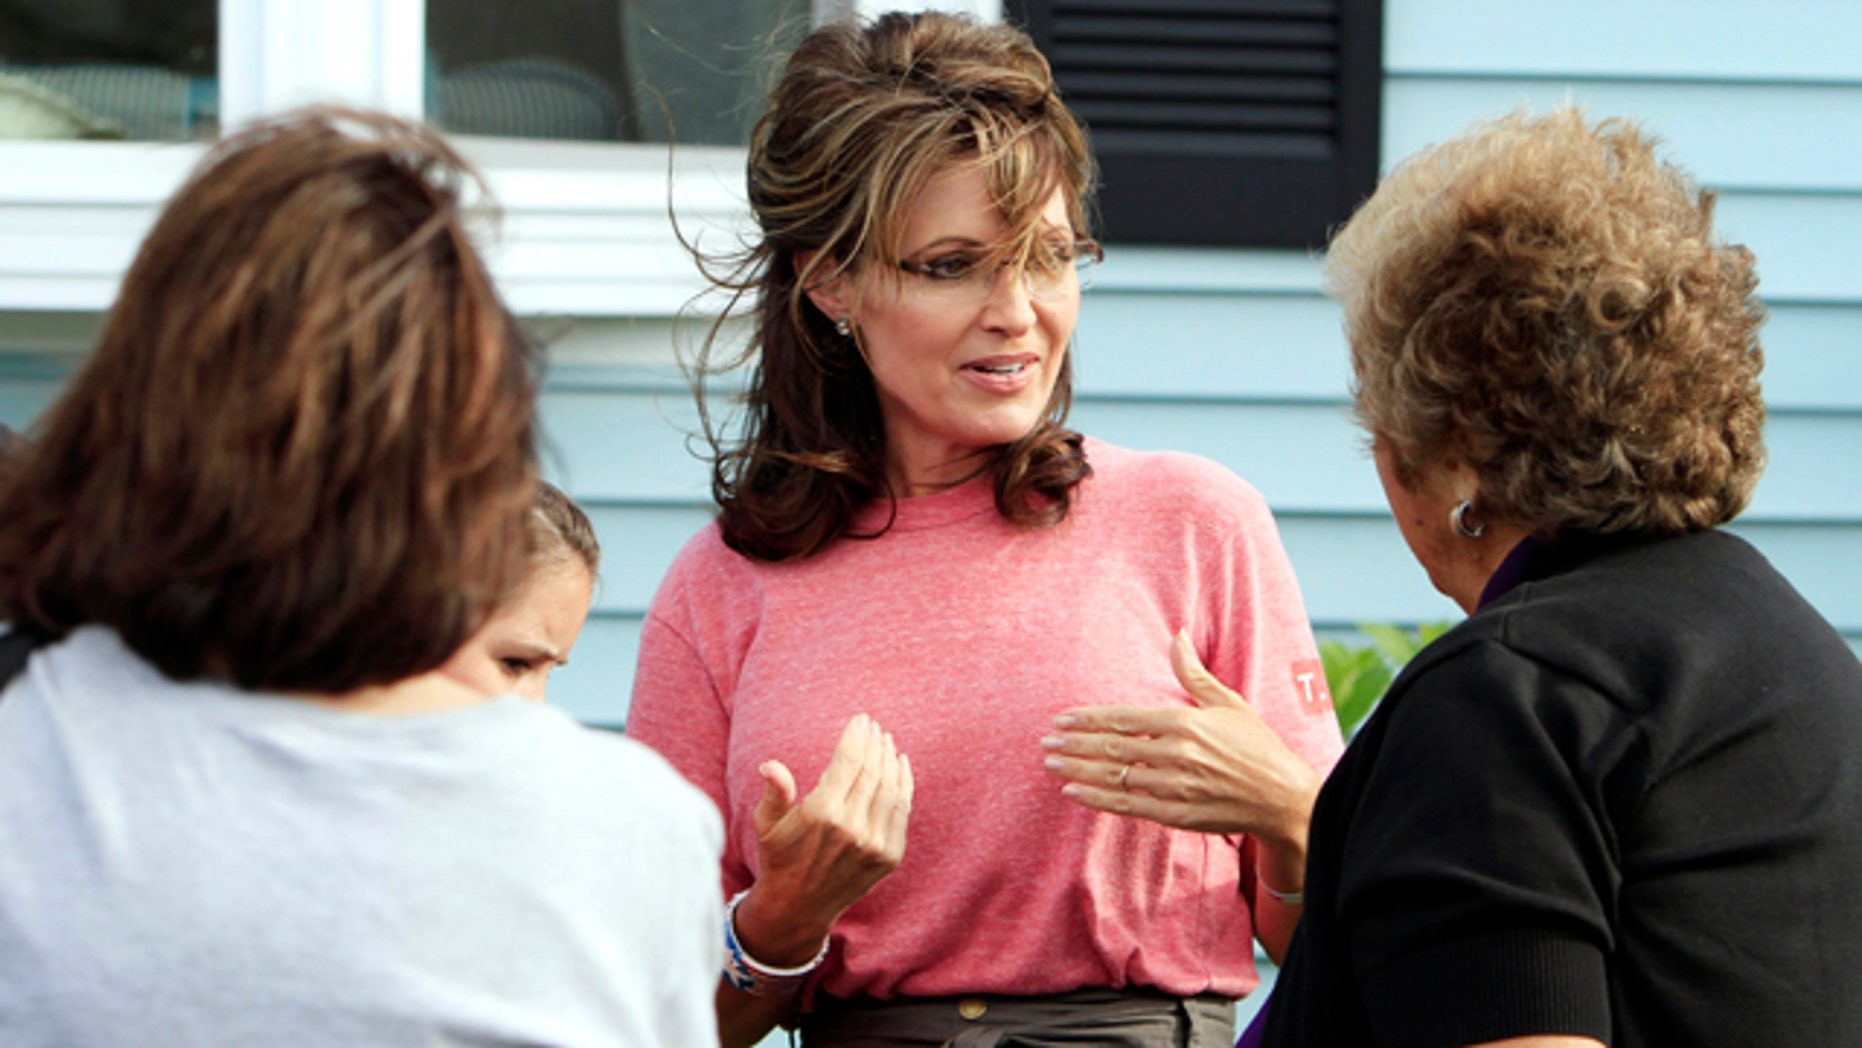 Thursday: Former Alaska governor and vice presidential candidate Sarah Palin talks with guests at a house party in Seabrook, N.H.